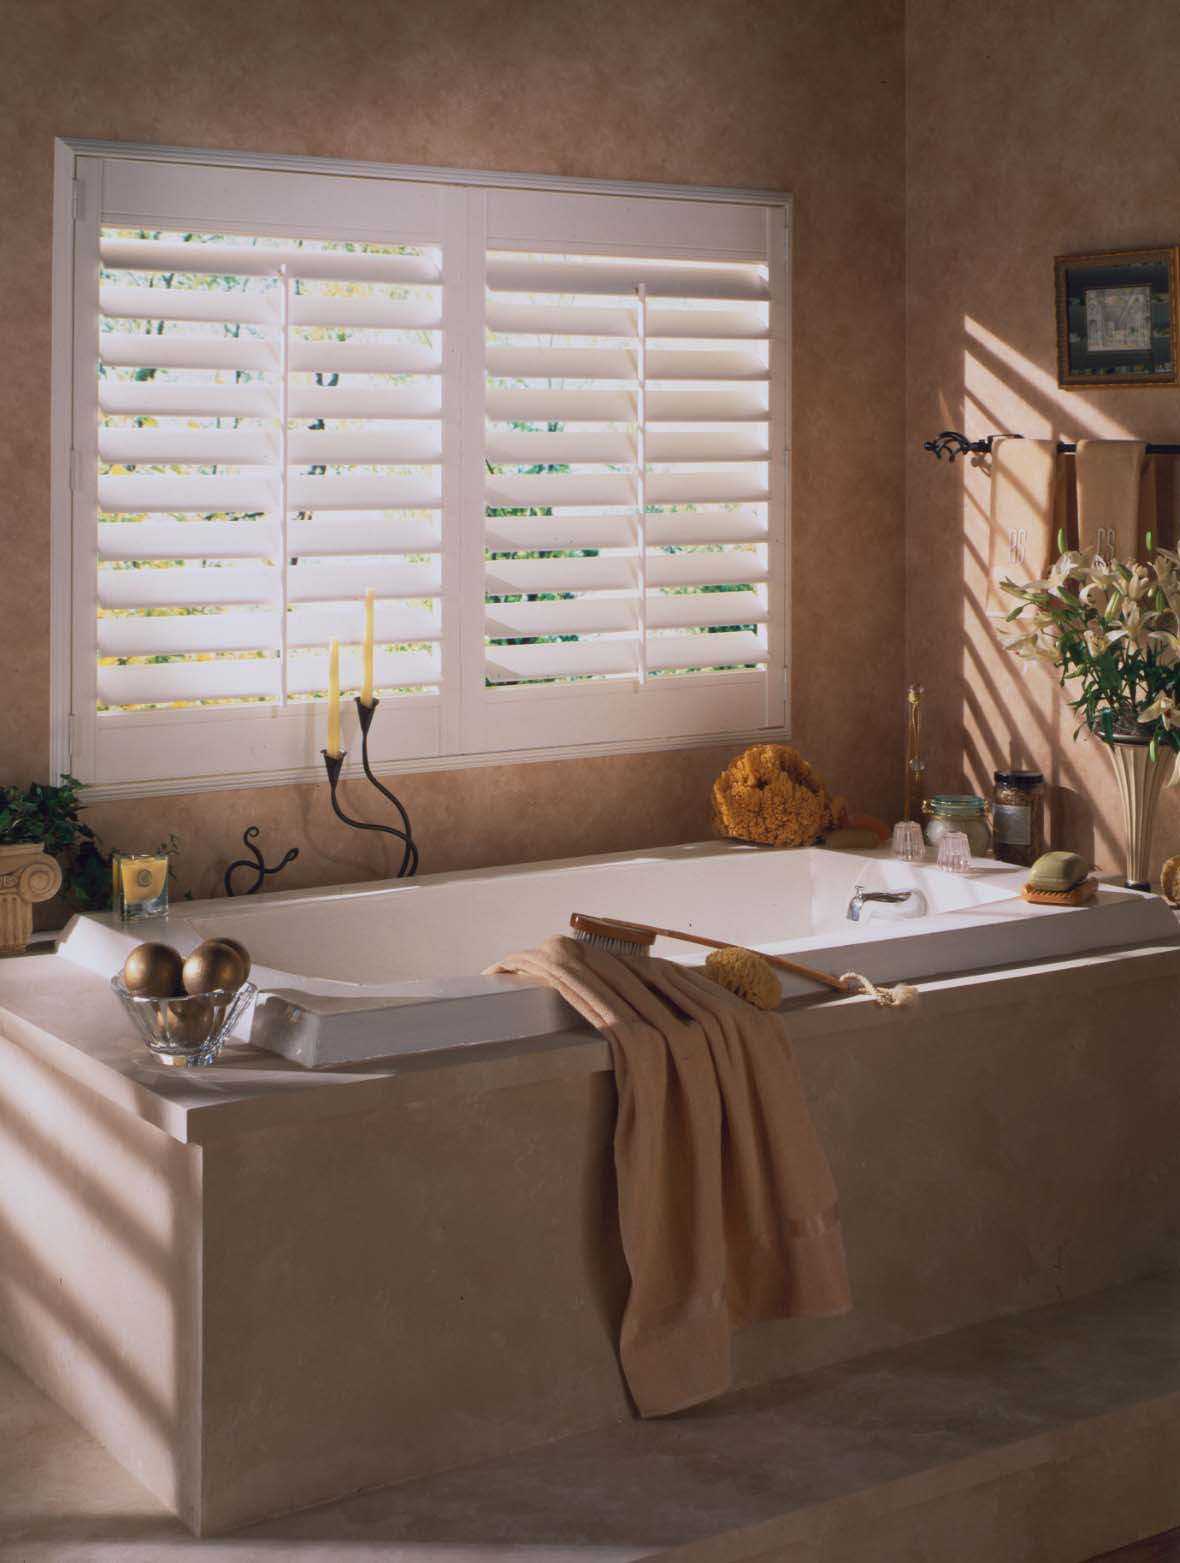 Shutters over bathtub